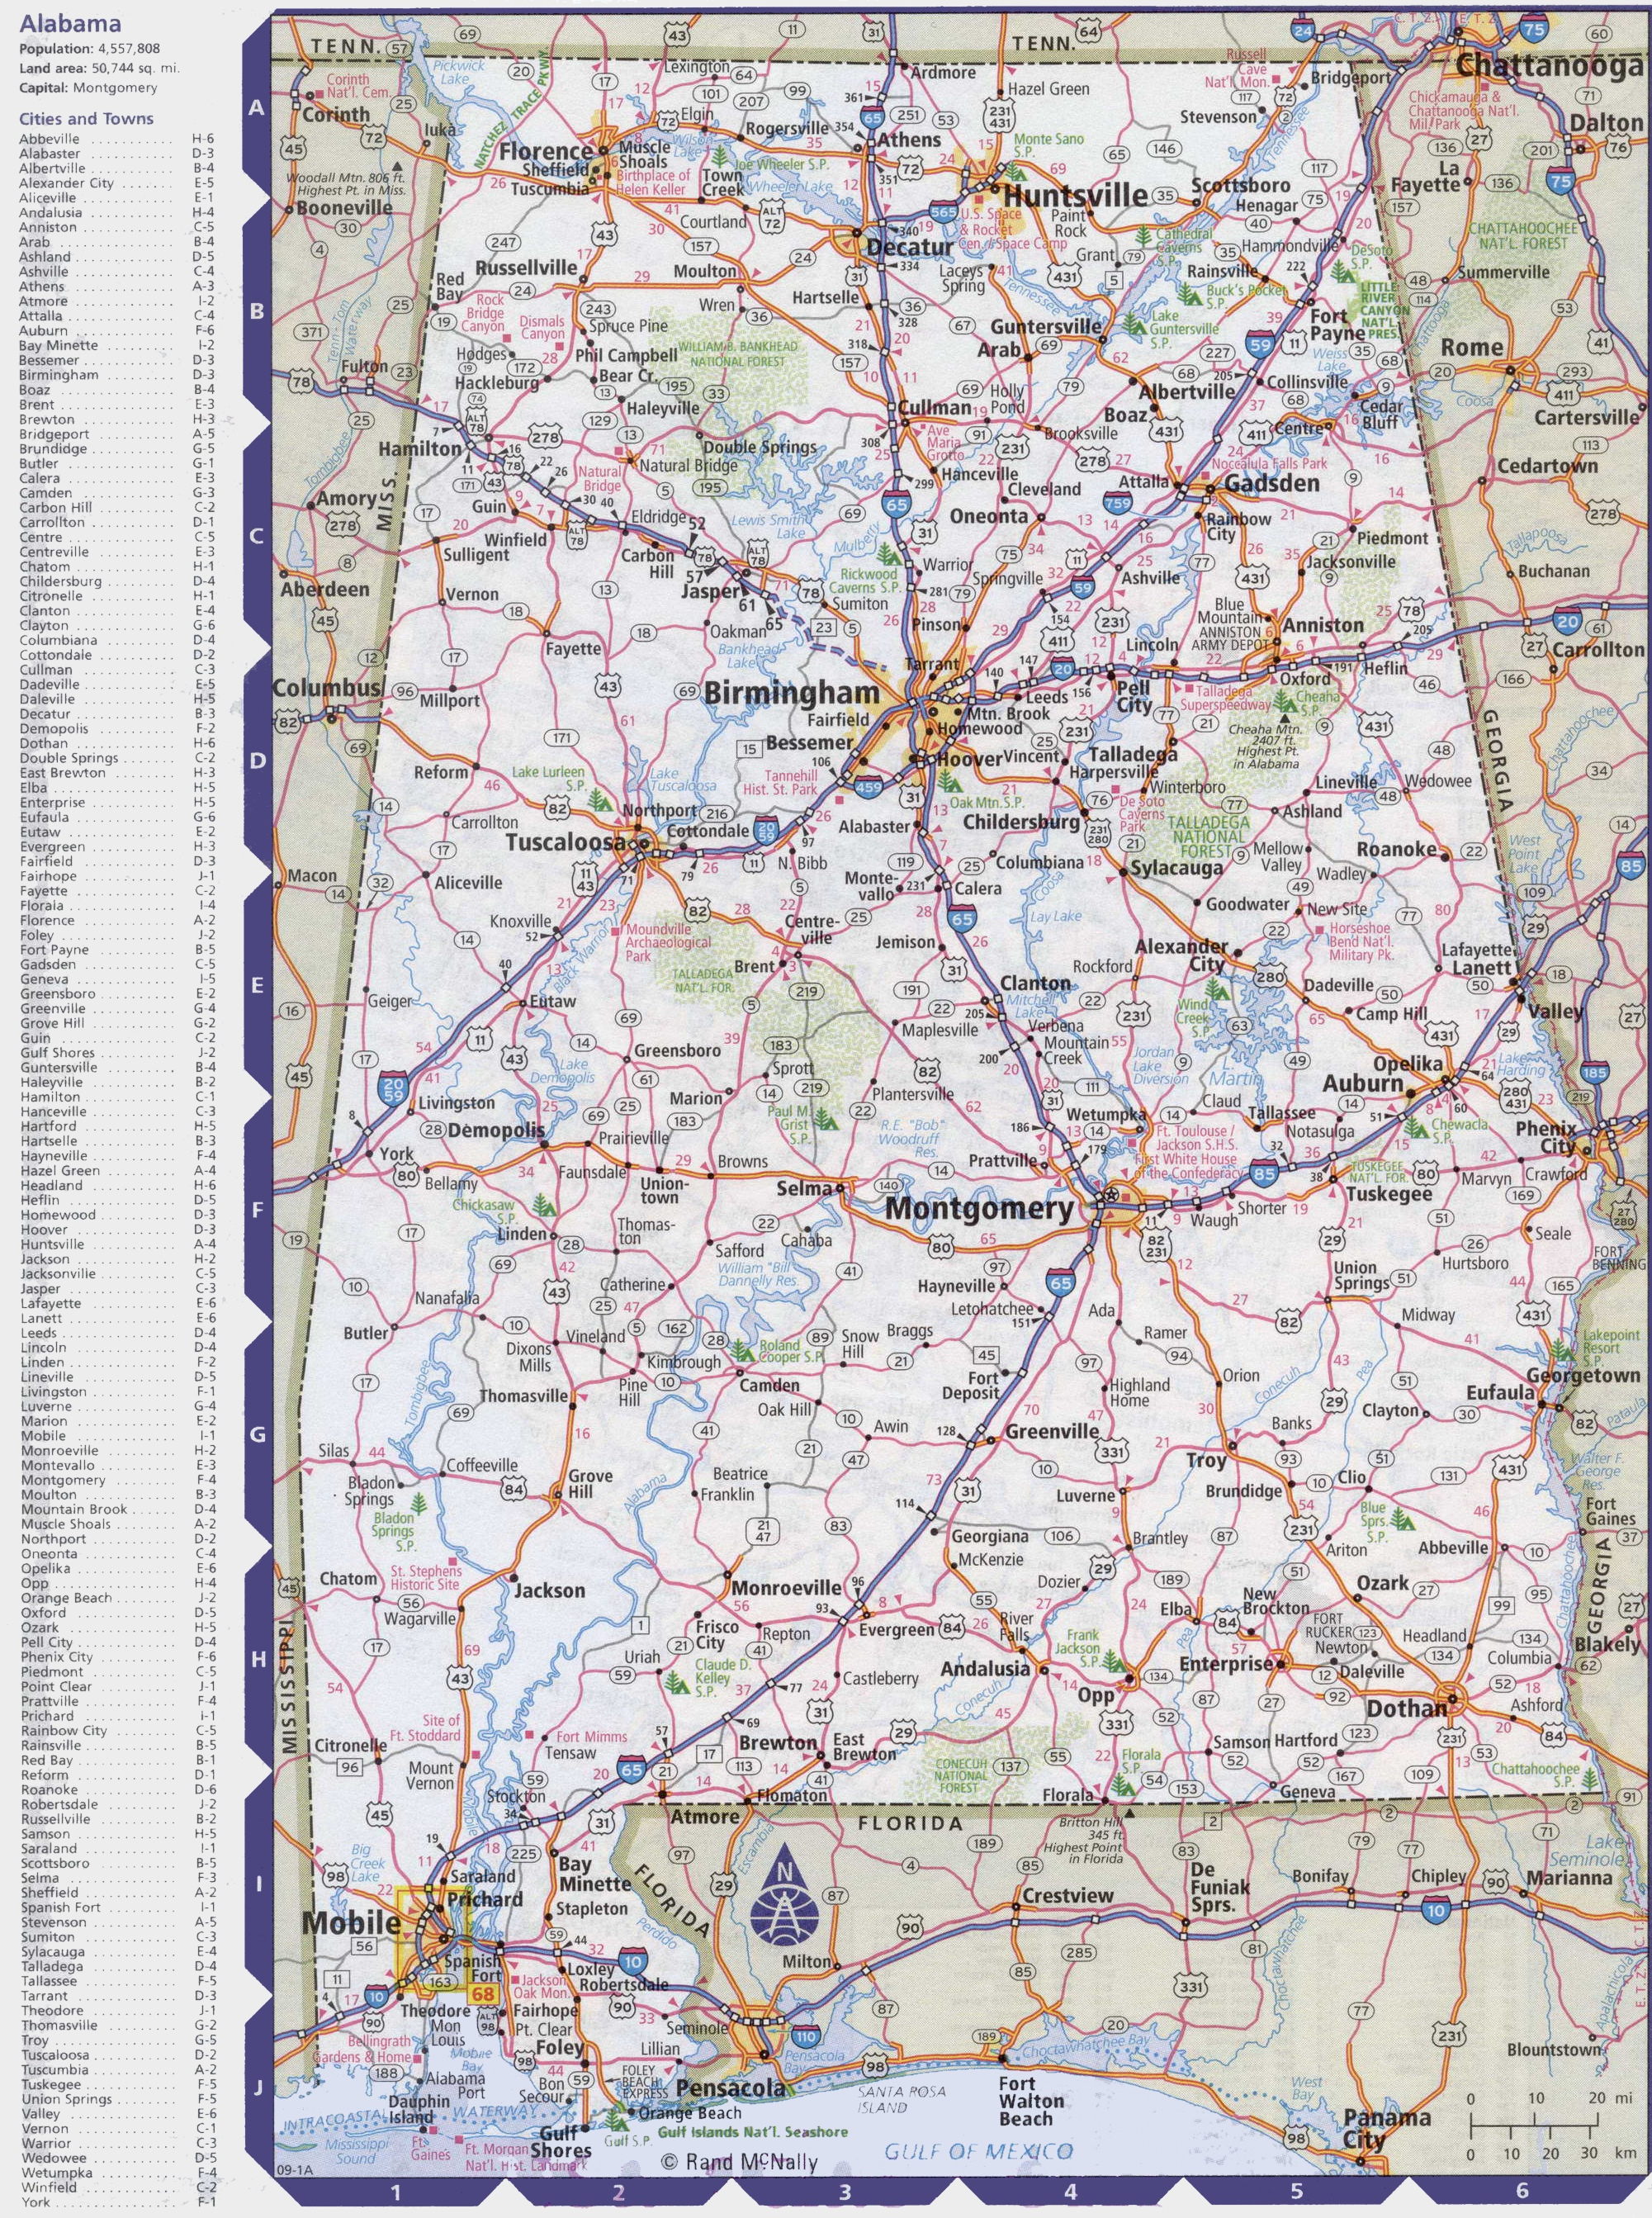 ... Map Of Alabama With Cities And Towns